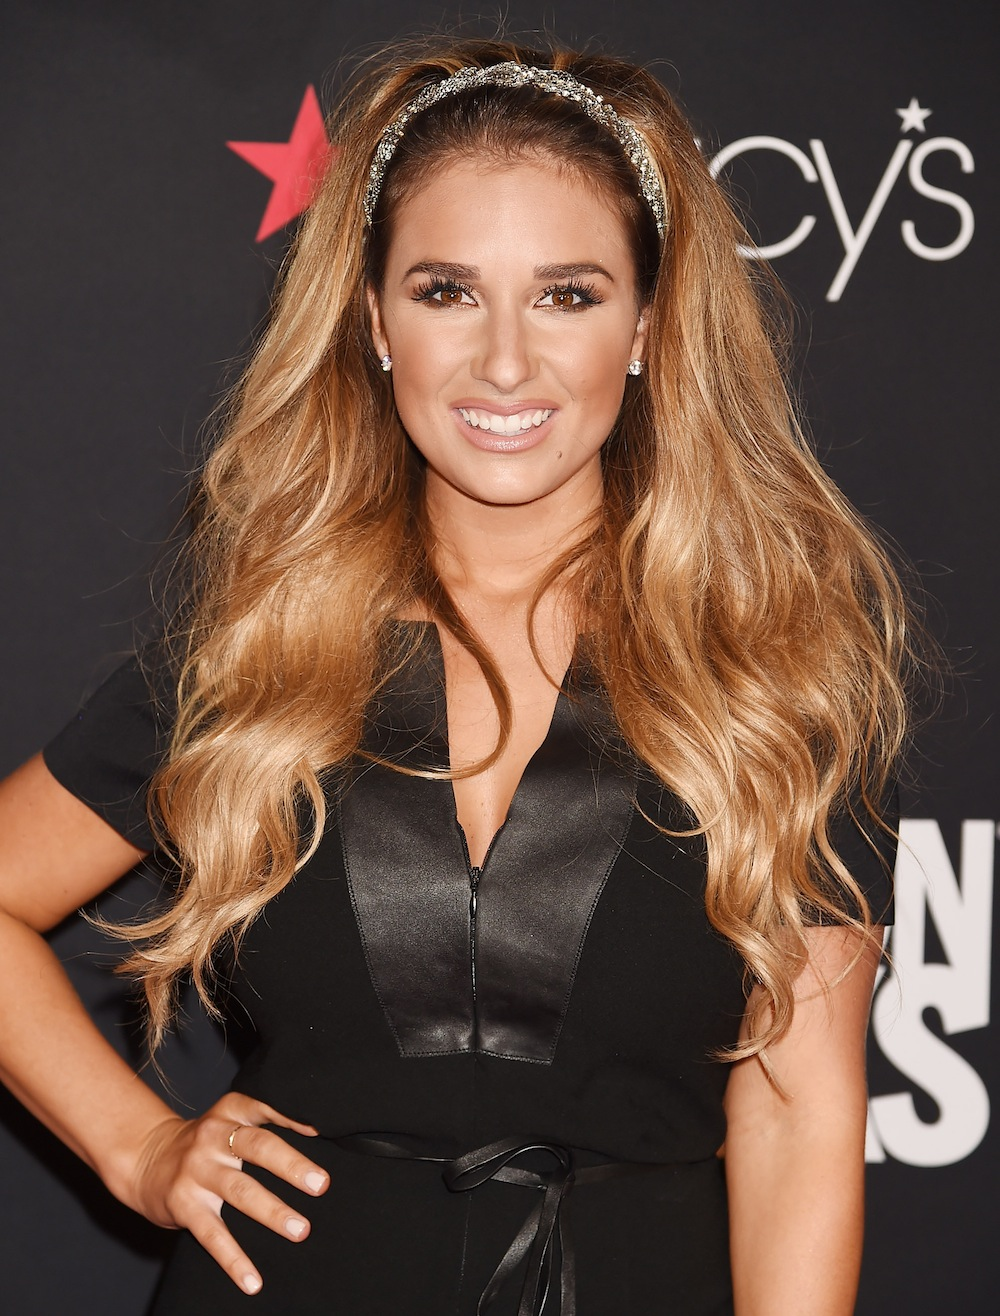 Jessie James Decker Doesn't Care If Her Naked Selfies Make ...